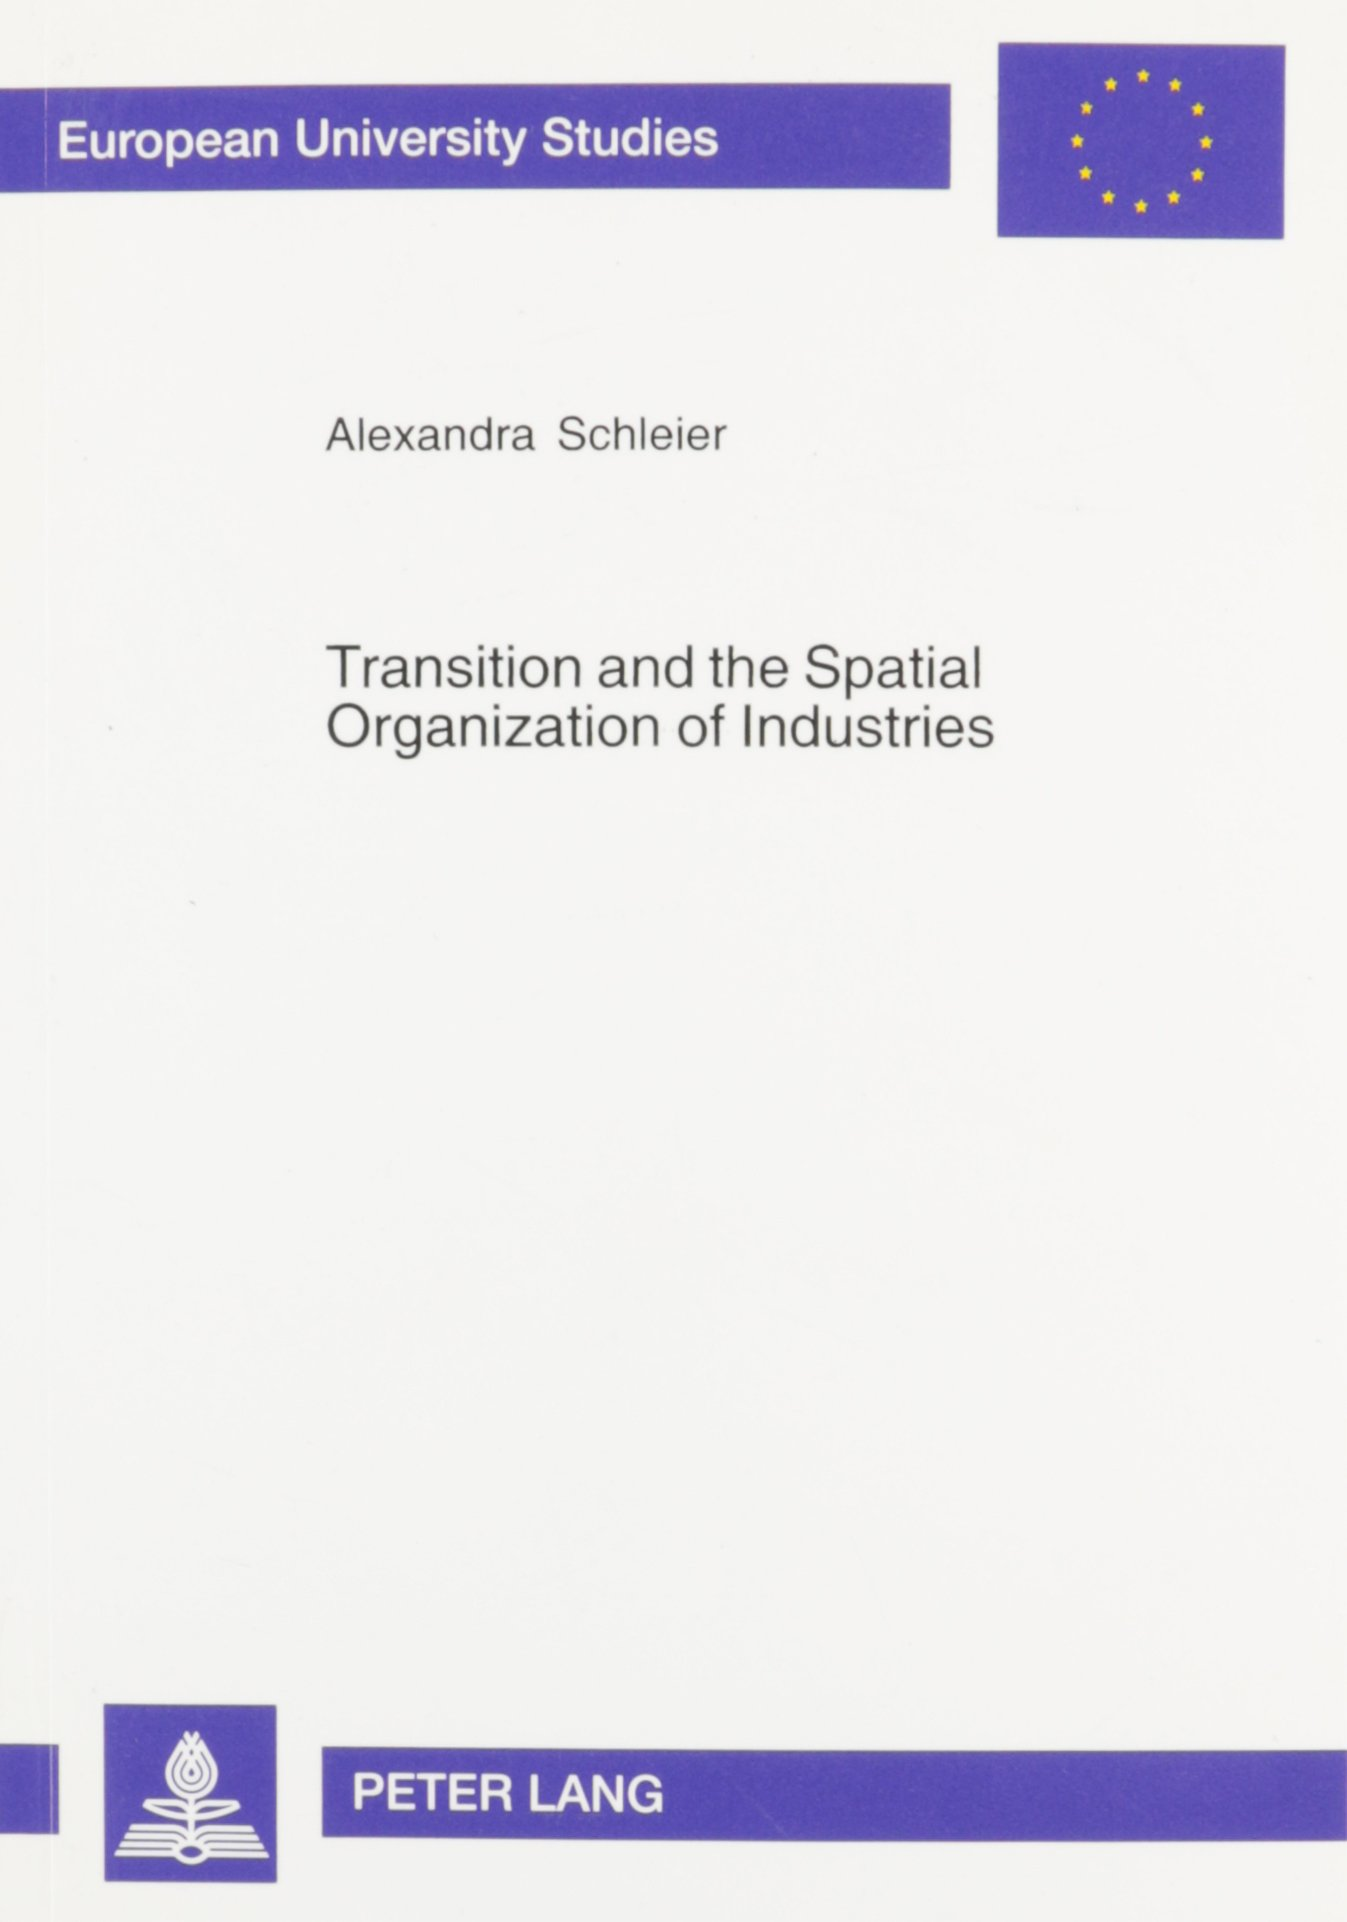 Transition and the Spatial Organization of Industries: The Case of the Bread Industry in the Irkutsk Oblast, Russia (European University Studies: Series 5, Economics and Managem) by Peter Lang Publishing